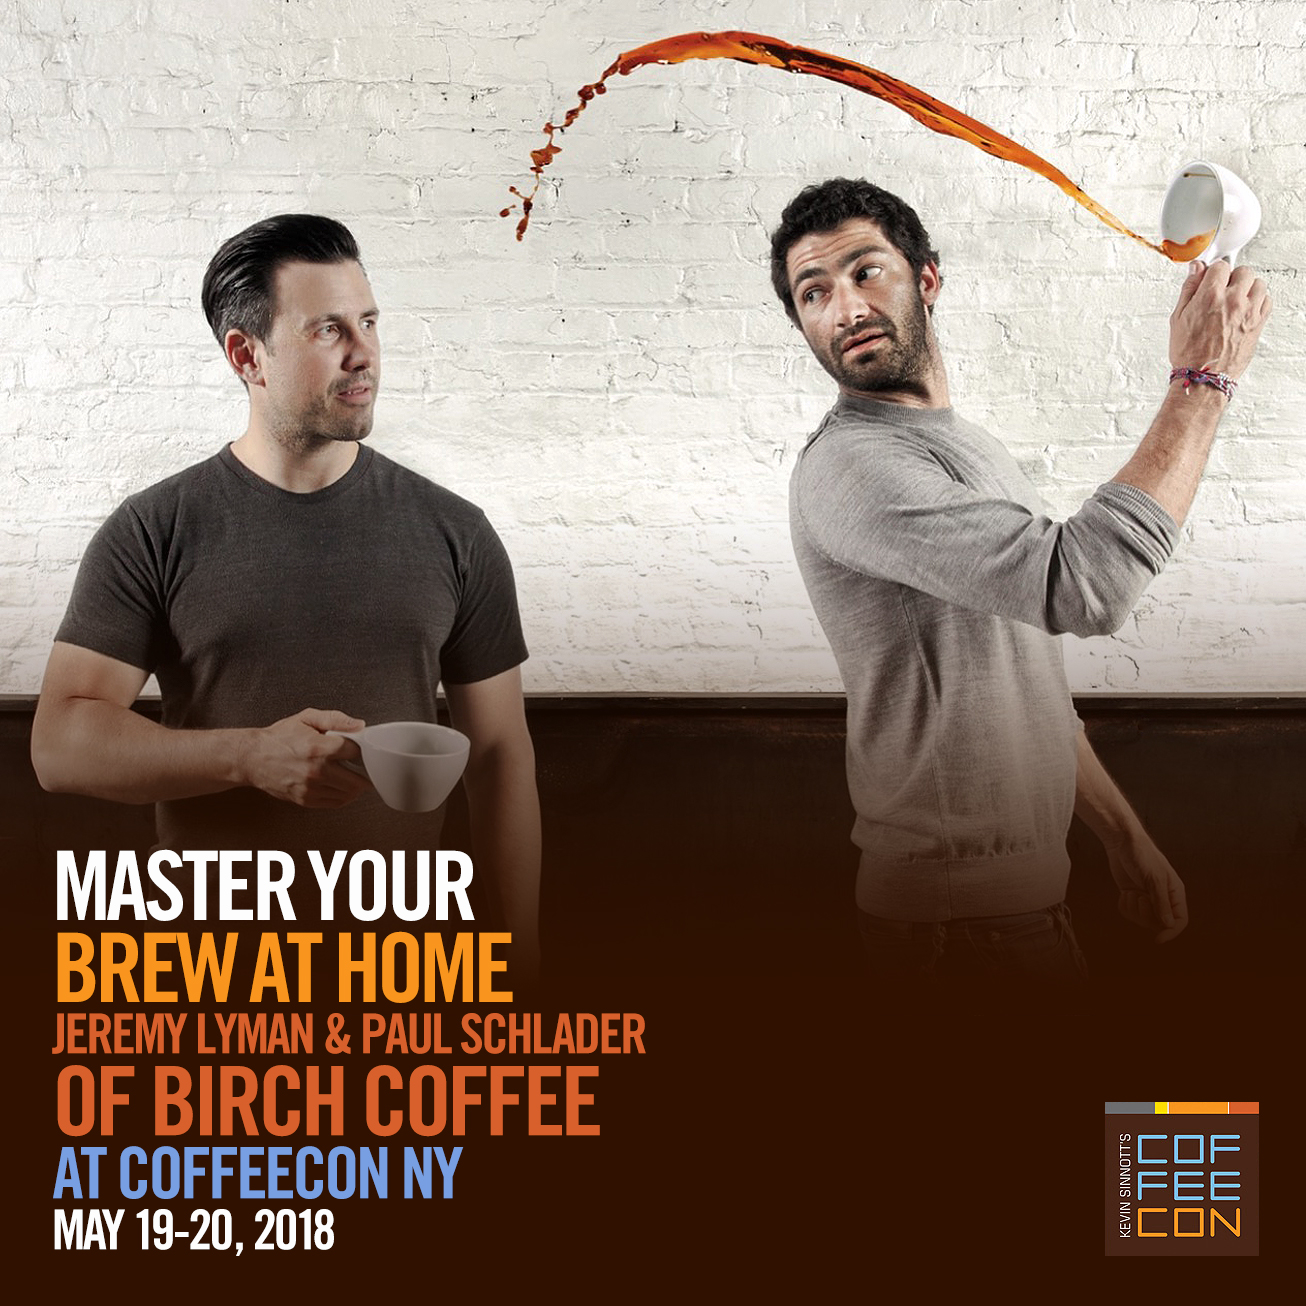 Master Your Brew At Home with Birch Coffee at CoffeeConNY